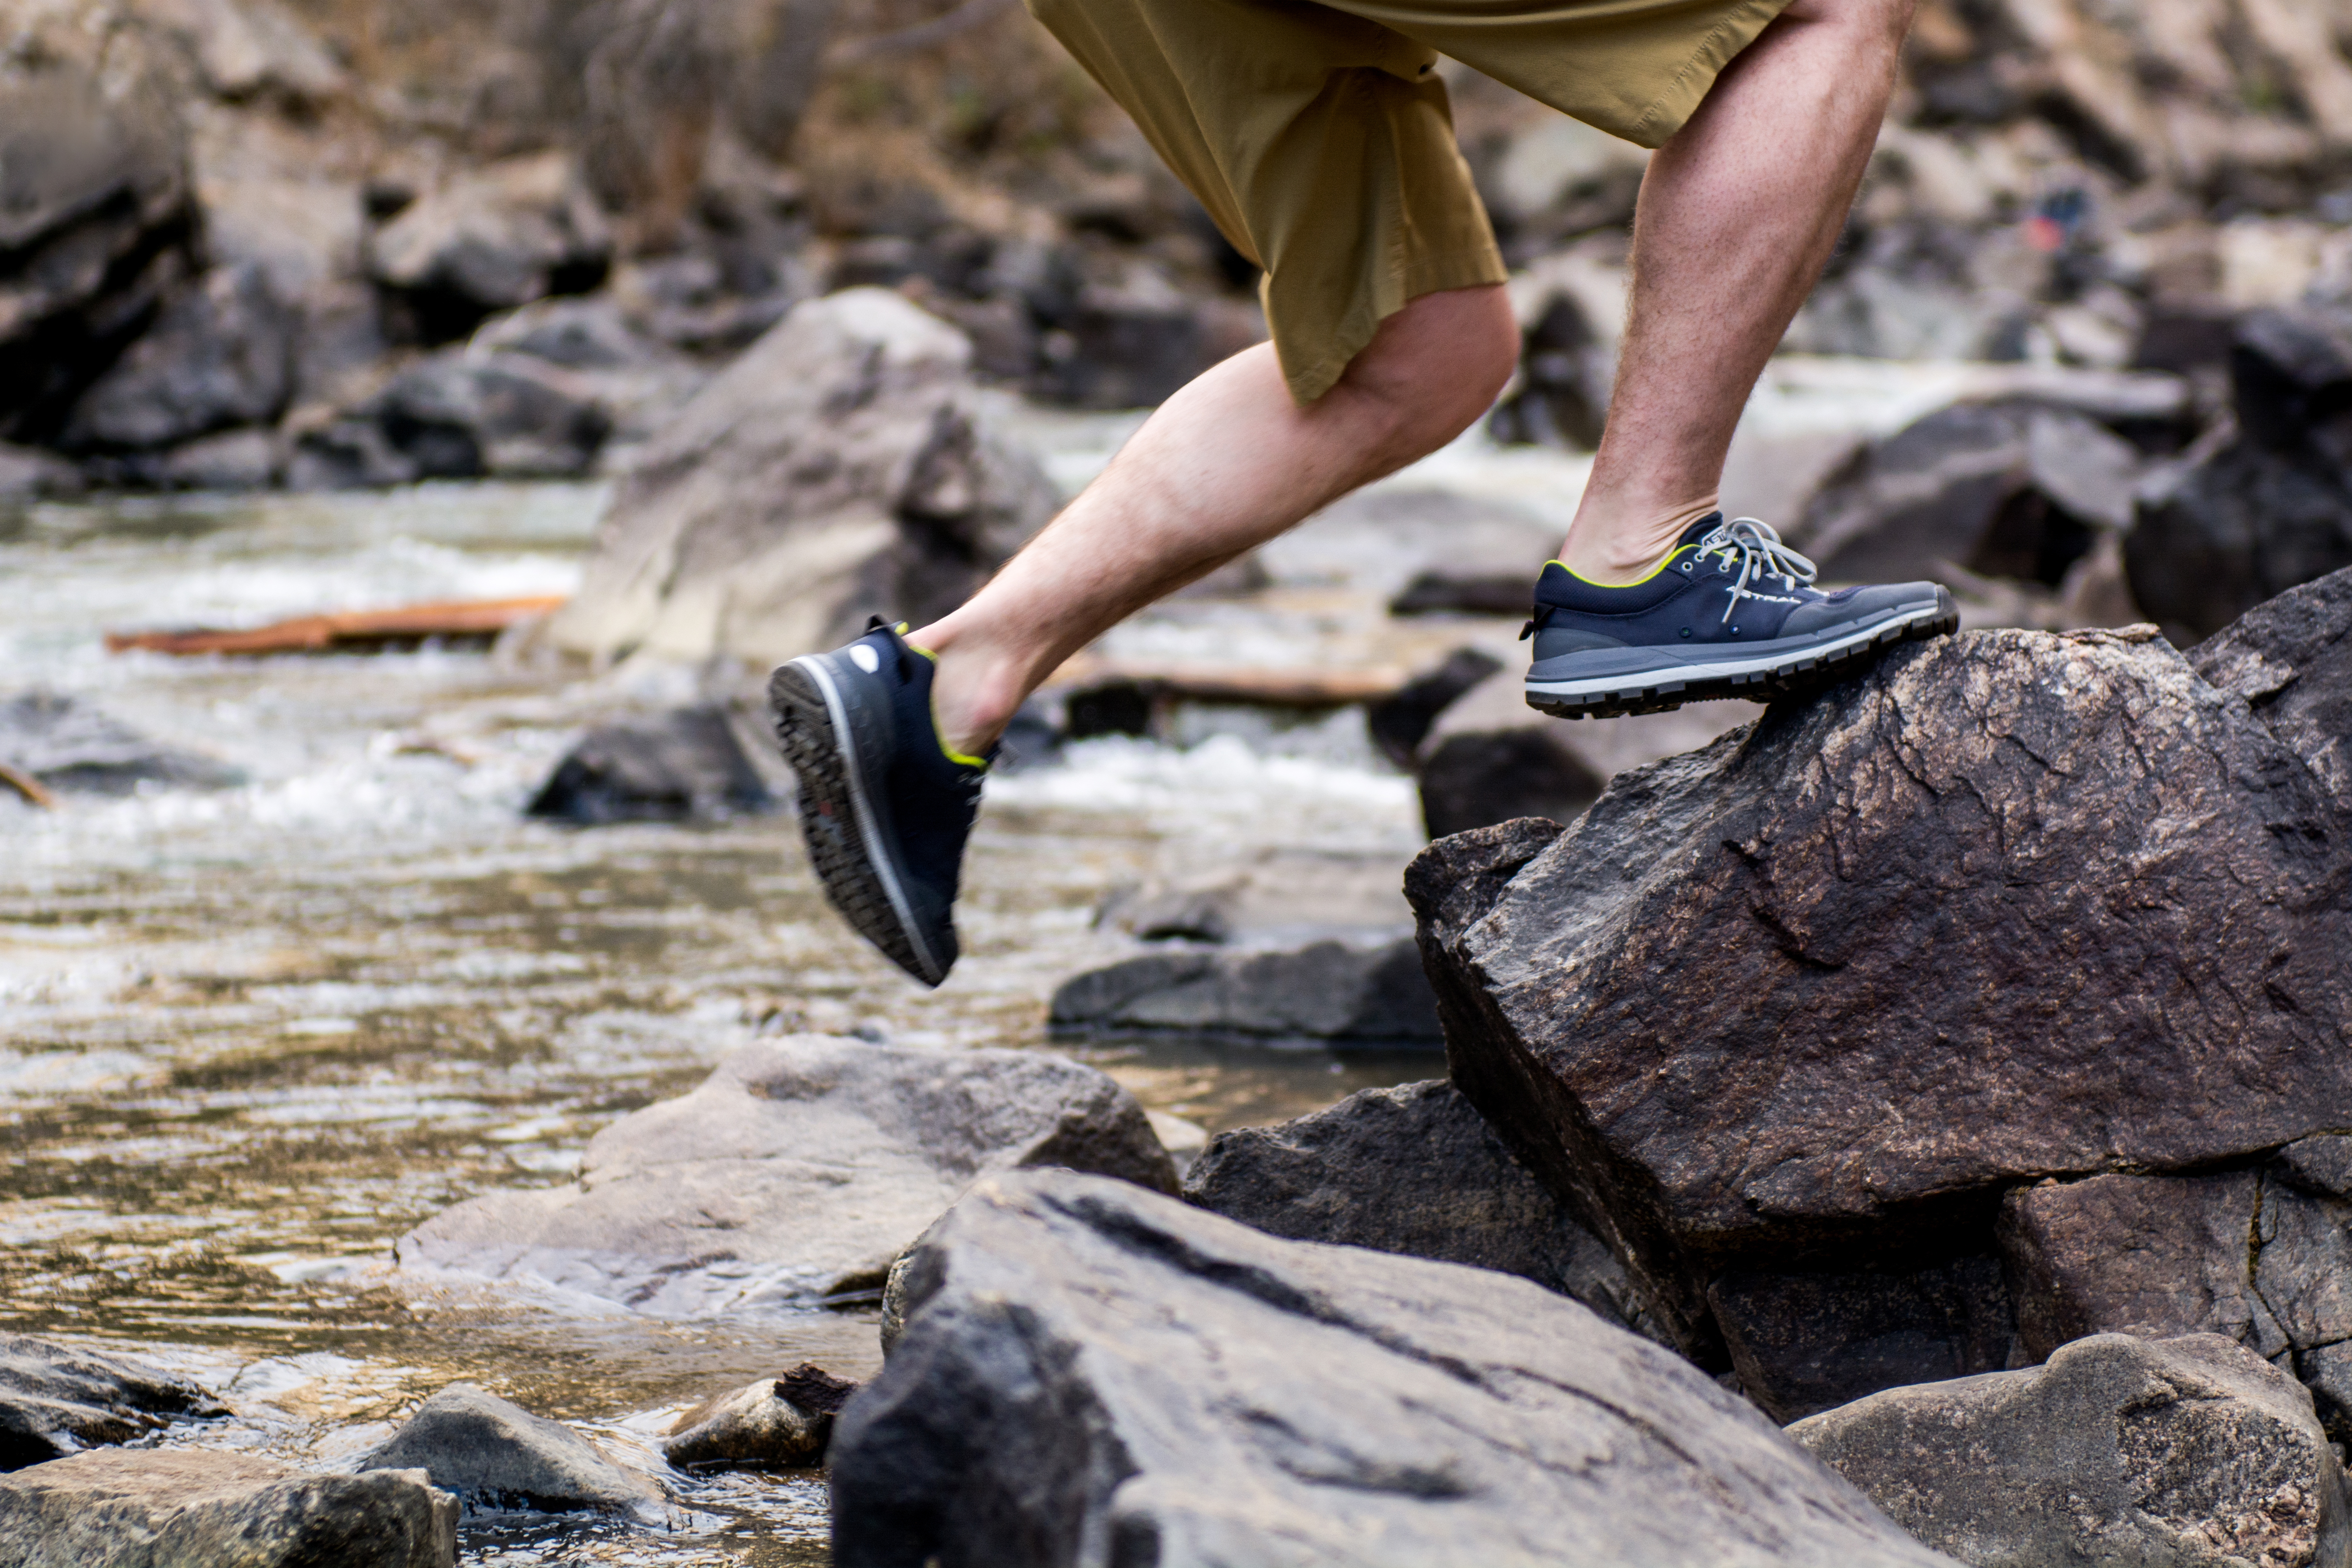 245804b02b21 Water Shoes That Suit Most Any Adventure - Men s Journal